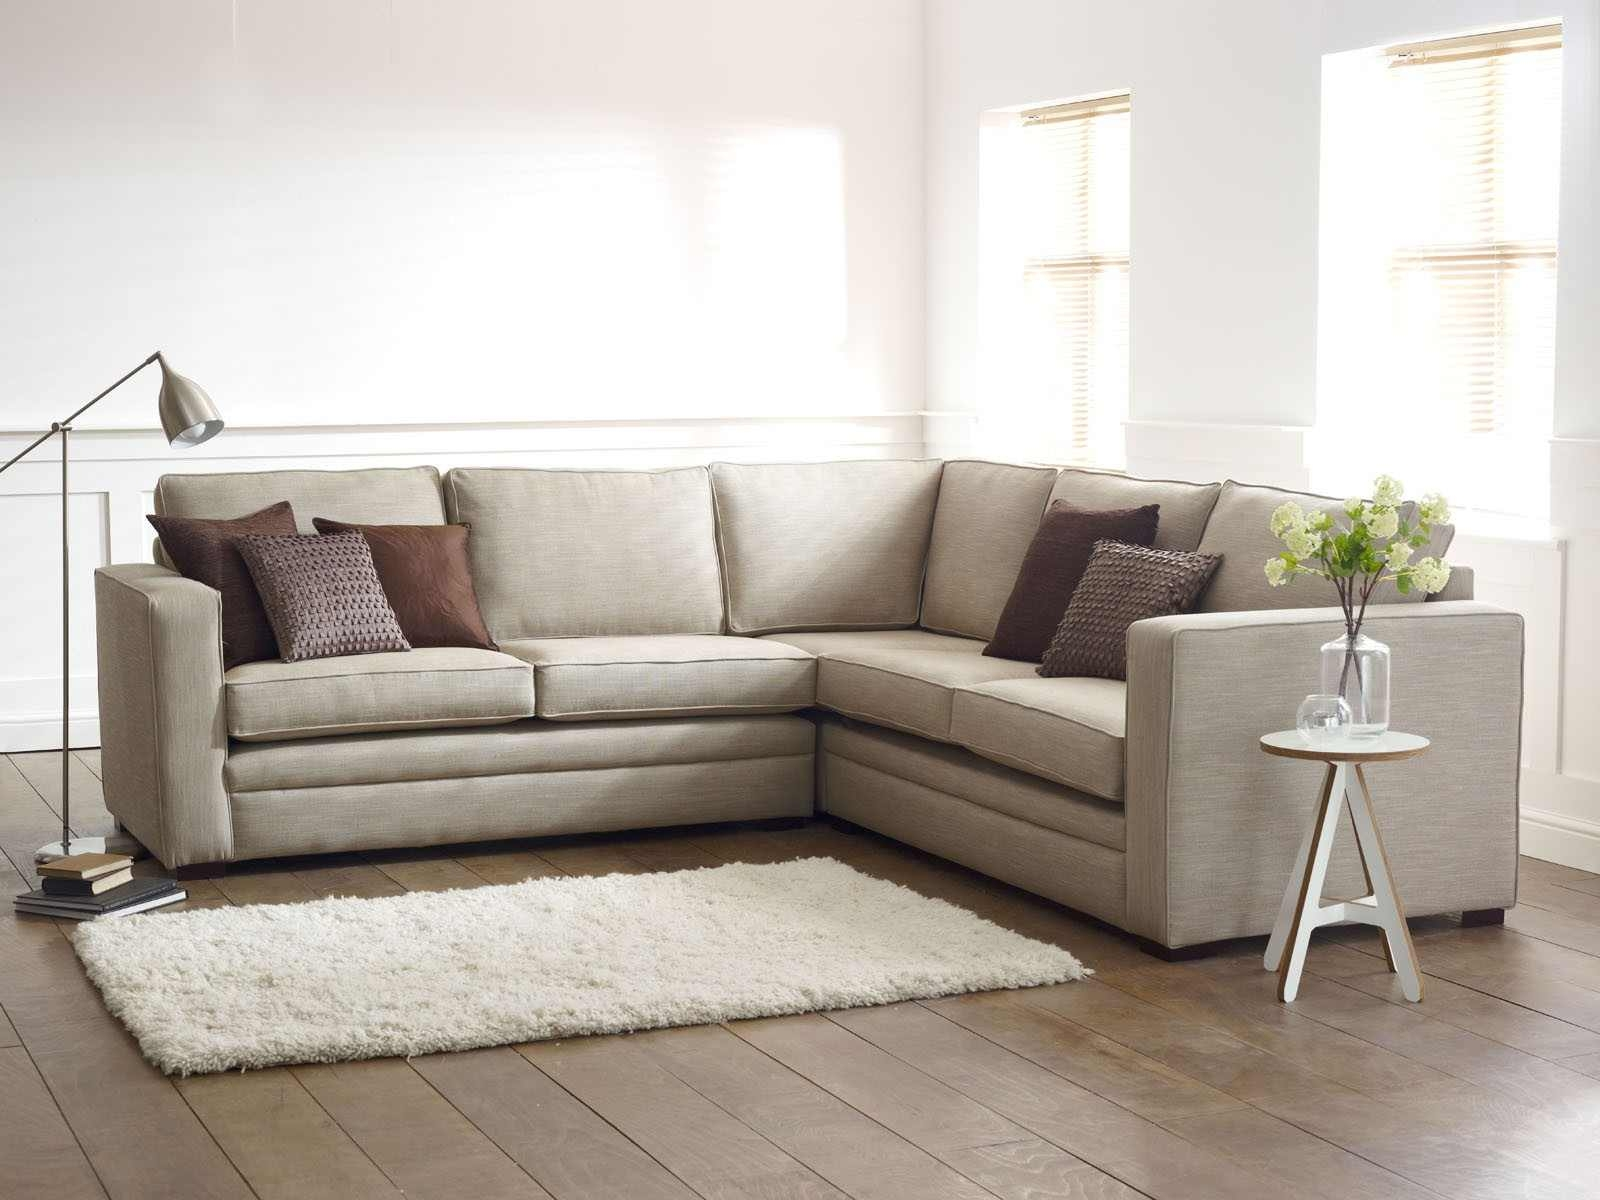 Furniture Mesmerizing Costco Sectionals Sofa For Cozy Living Room Pertaining To Cozy Sectional Sofas (Image 9 of 15)